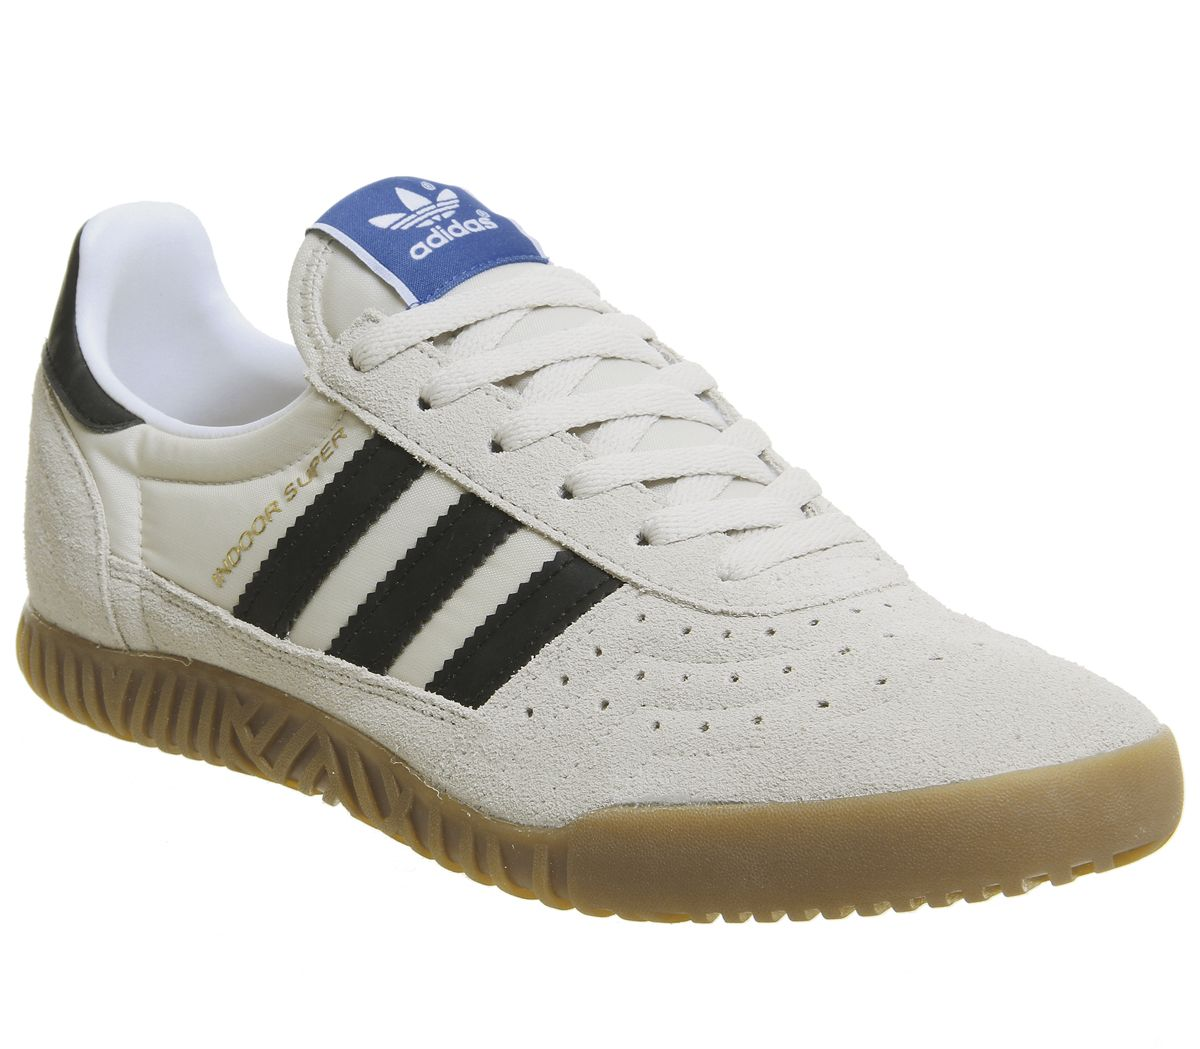 f8747df292ad2e adidas Indoor Super Trainers Clear Brown Core Black Gum - His trainers